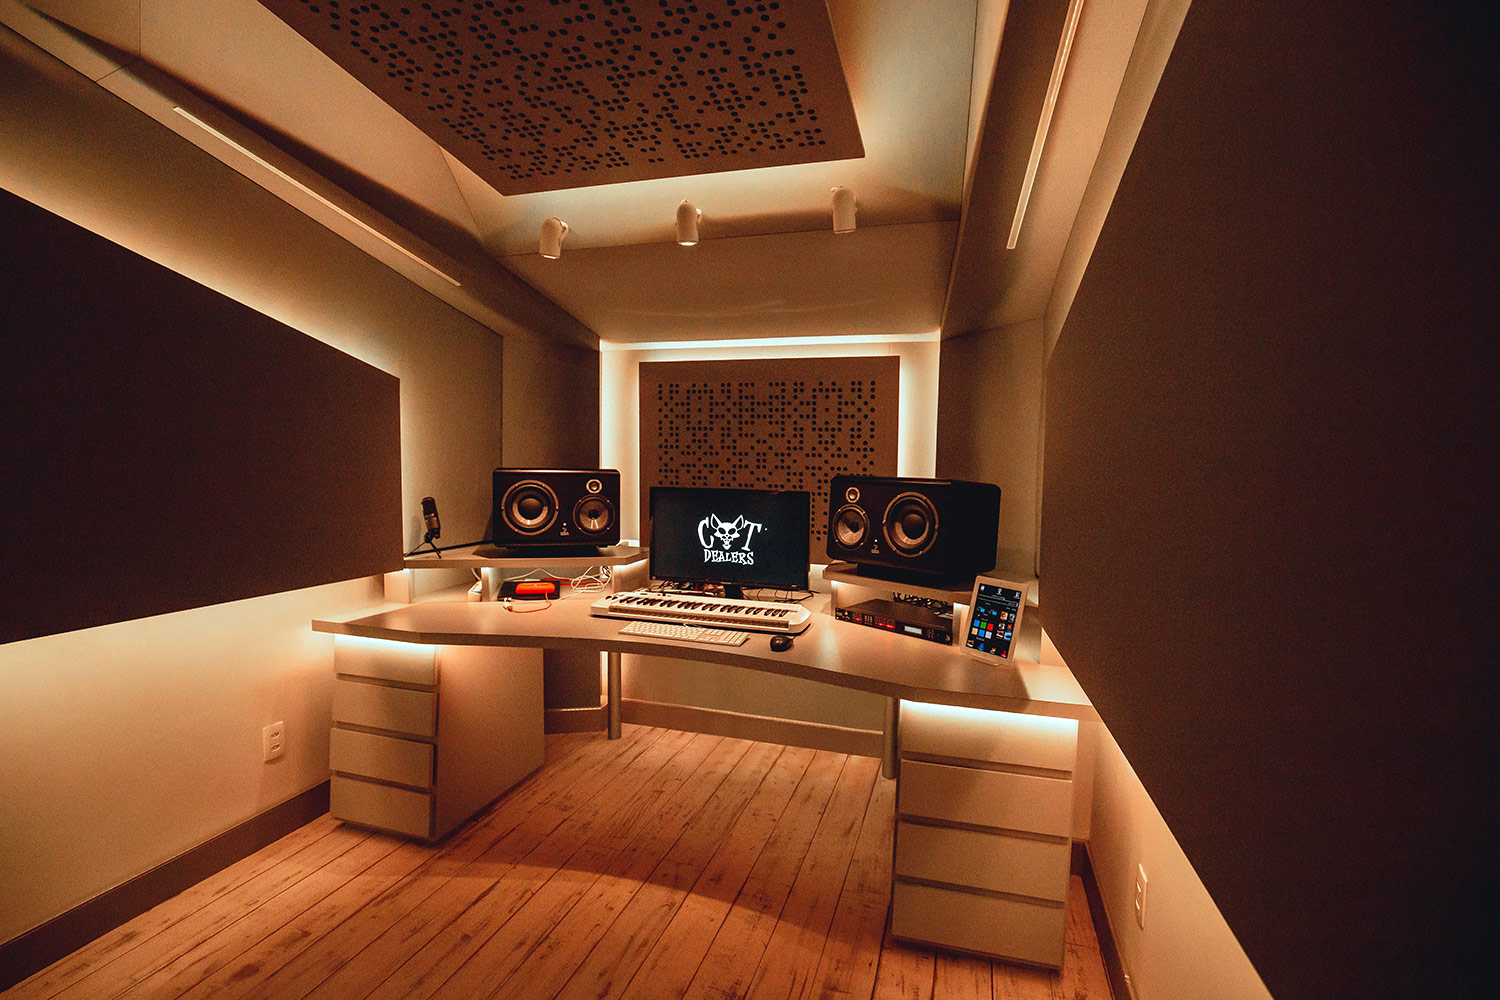 Recognizing the value of superior studio design / acoustic excellence, Hit recording duo Cat Dealers commissioned WSDG to create a compact yet powerful dream recording studio. Best Project Studio Design. Yellow Light.